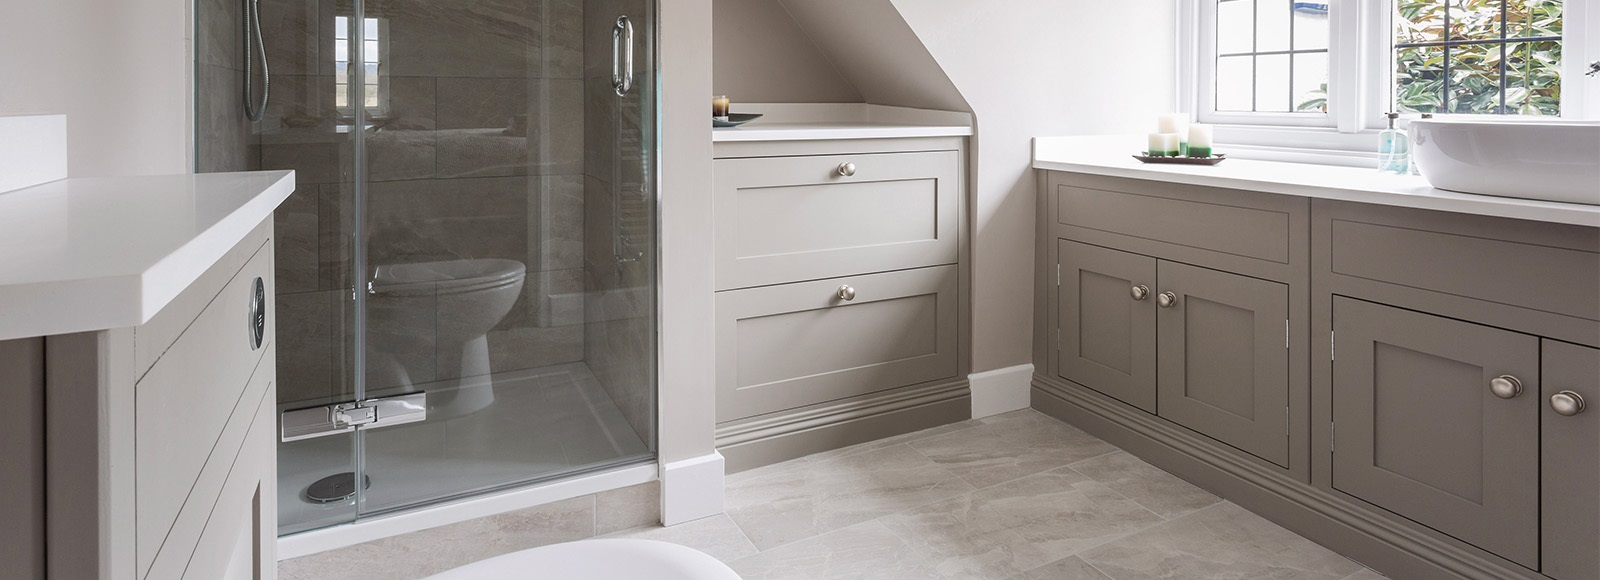 Luxury Bespoke Guest Bathroom - Burlanes handmade bathroom vanity with vessel basin and walk-in shower enclosure.